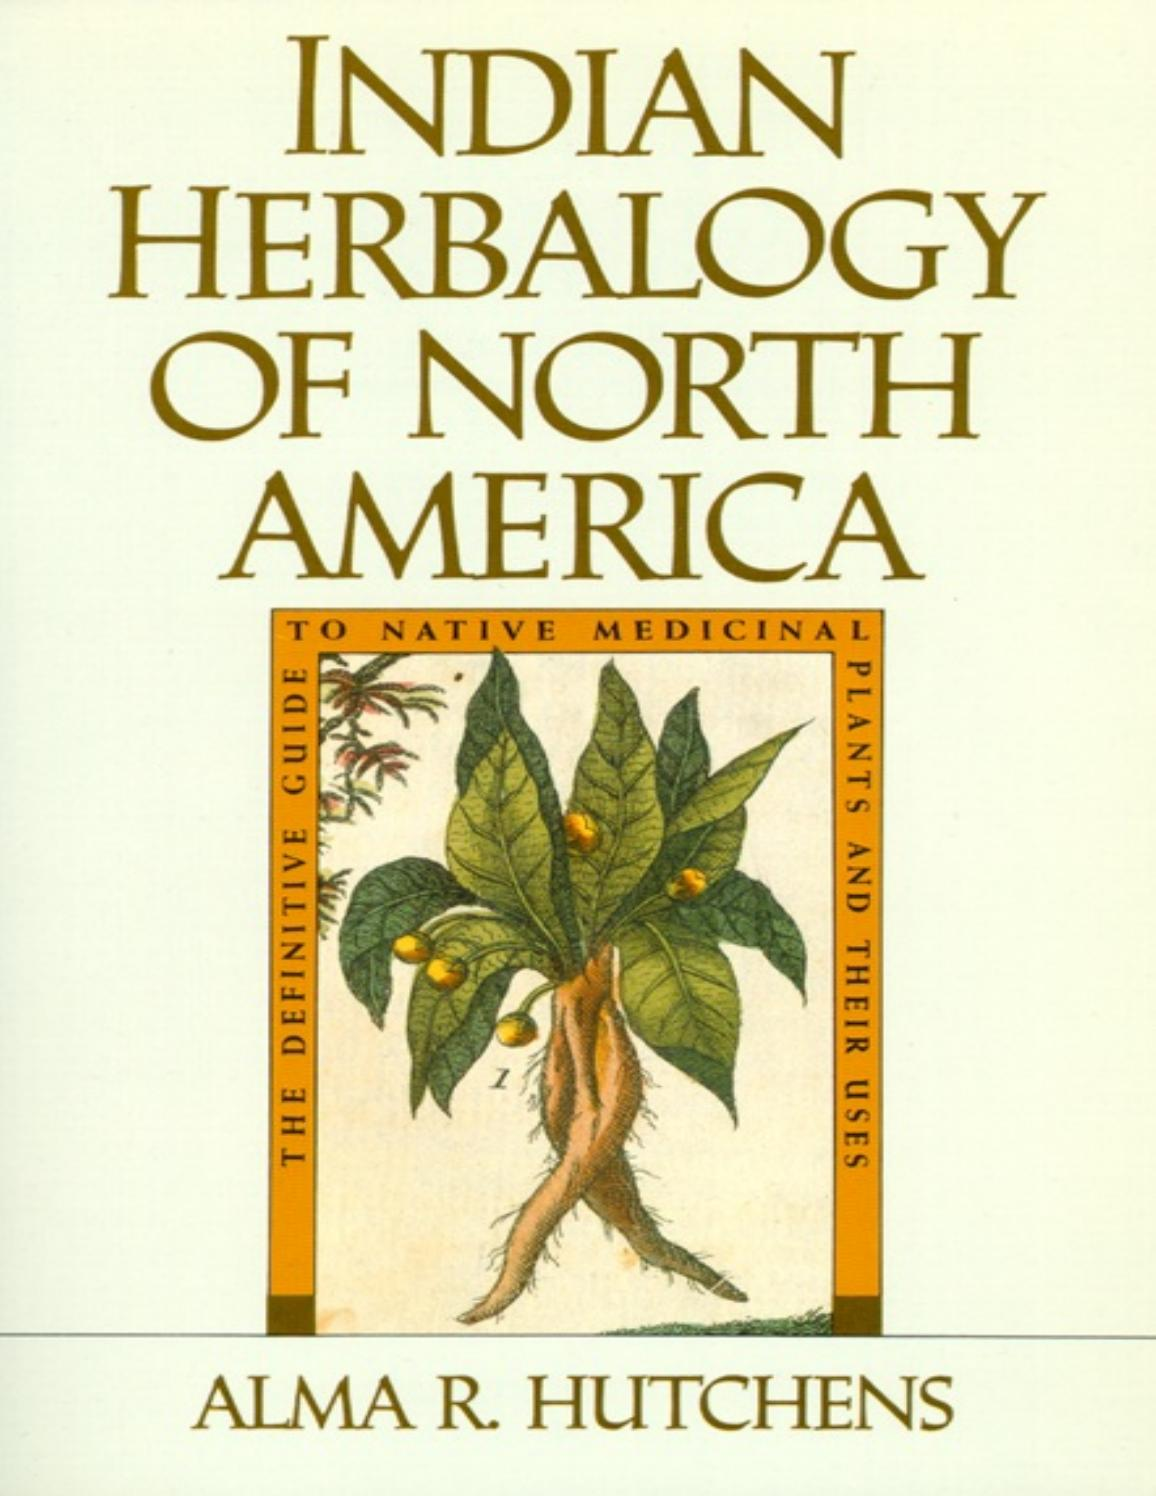 Tmp 27251 indian herbalogy of north america362117679 by Abdullah